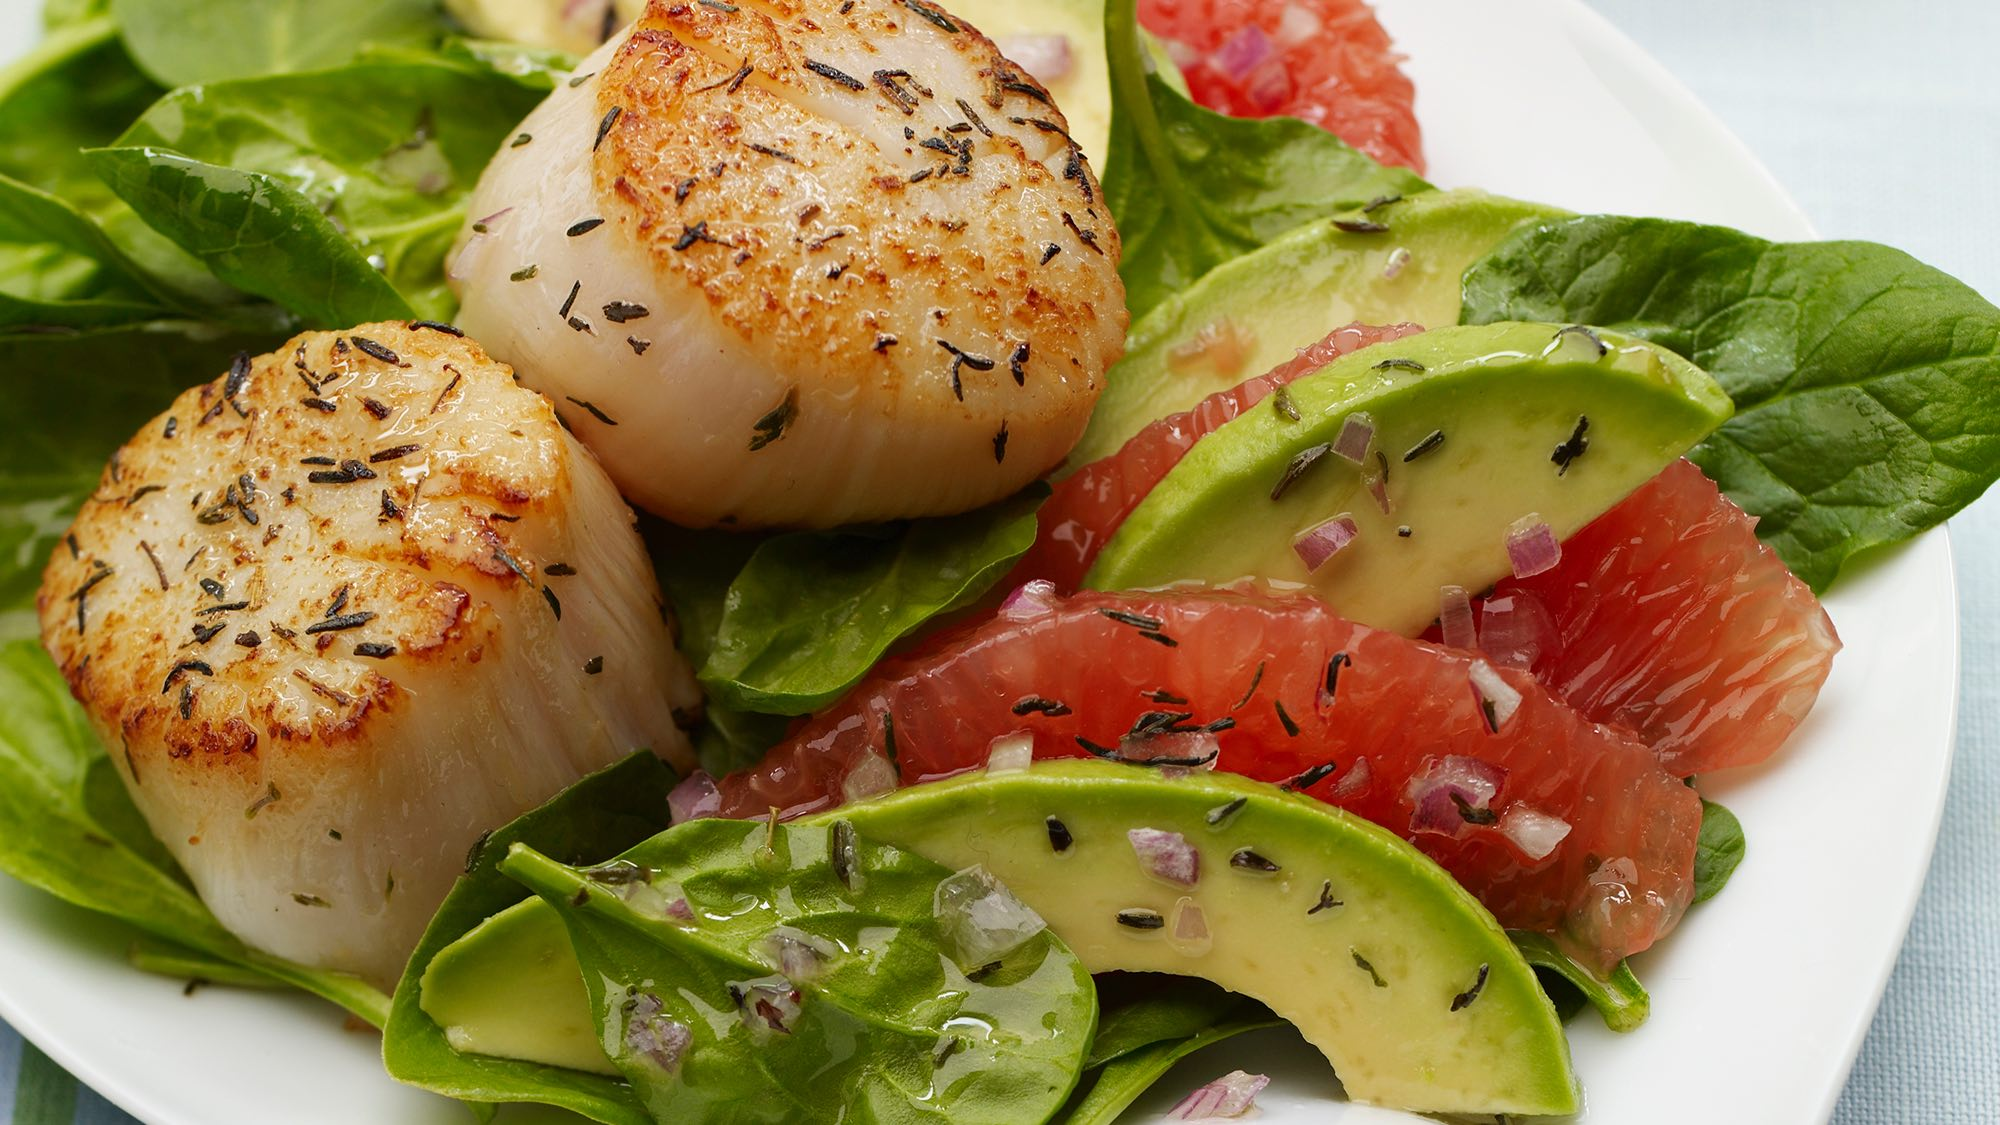 McCormick Seared Scallops with Red Grapefruit Avocado Salad